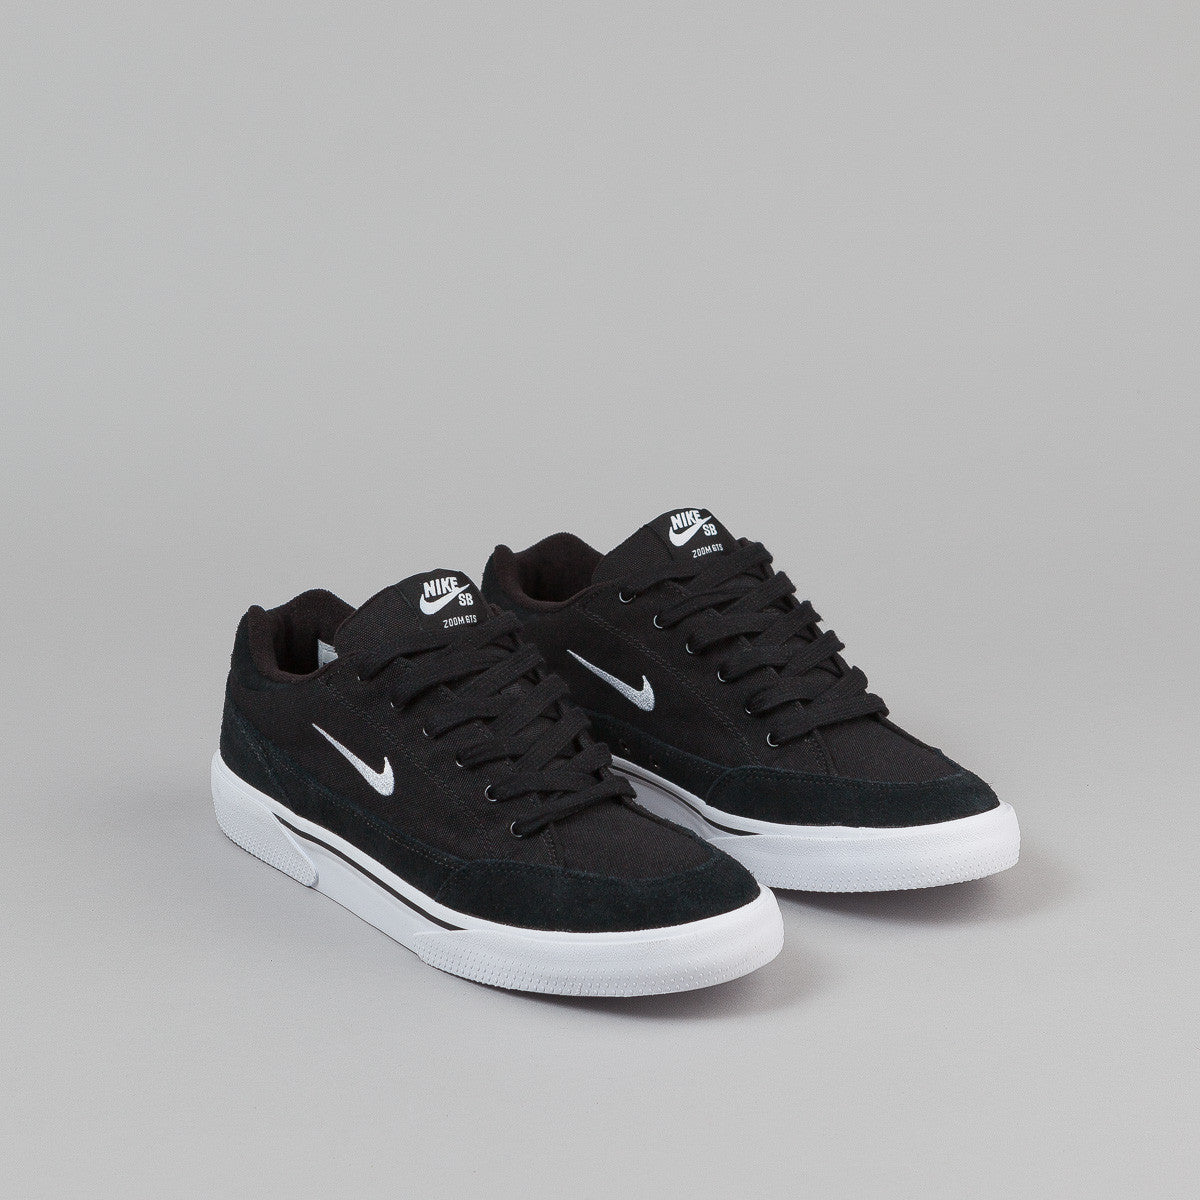 Nike SB Zoom GTS Shoes - Black / White